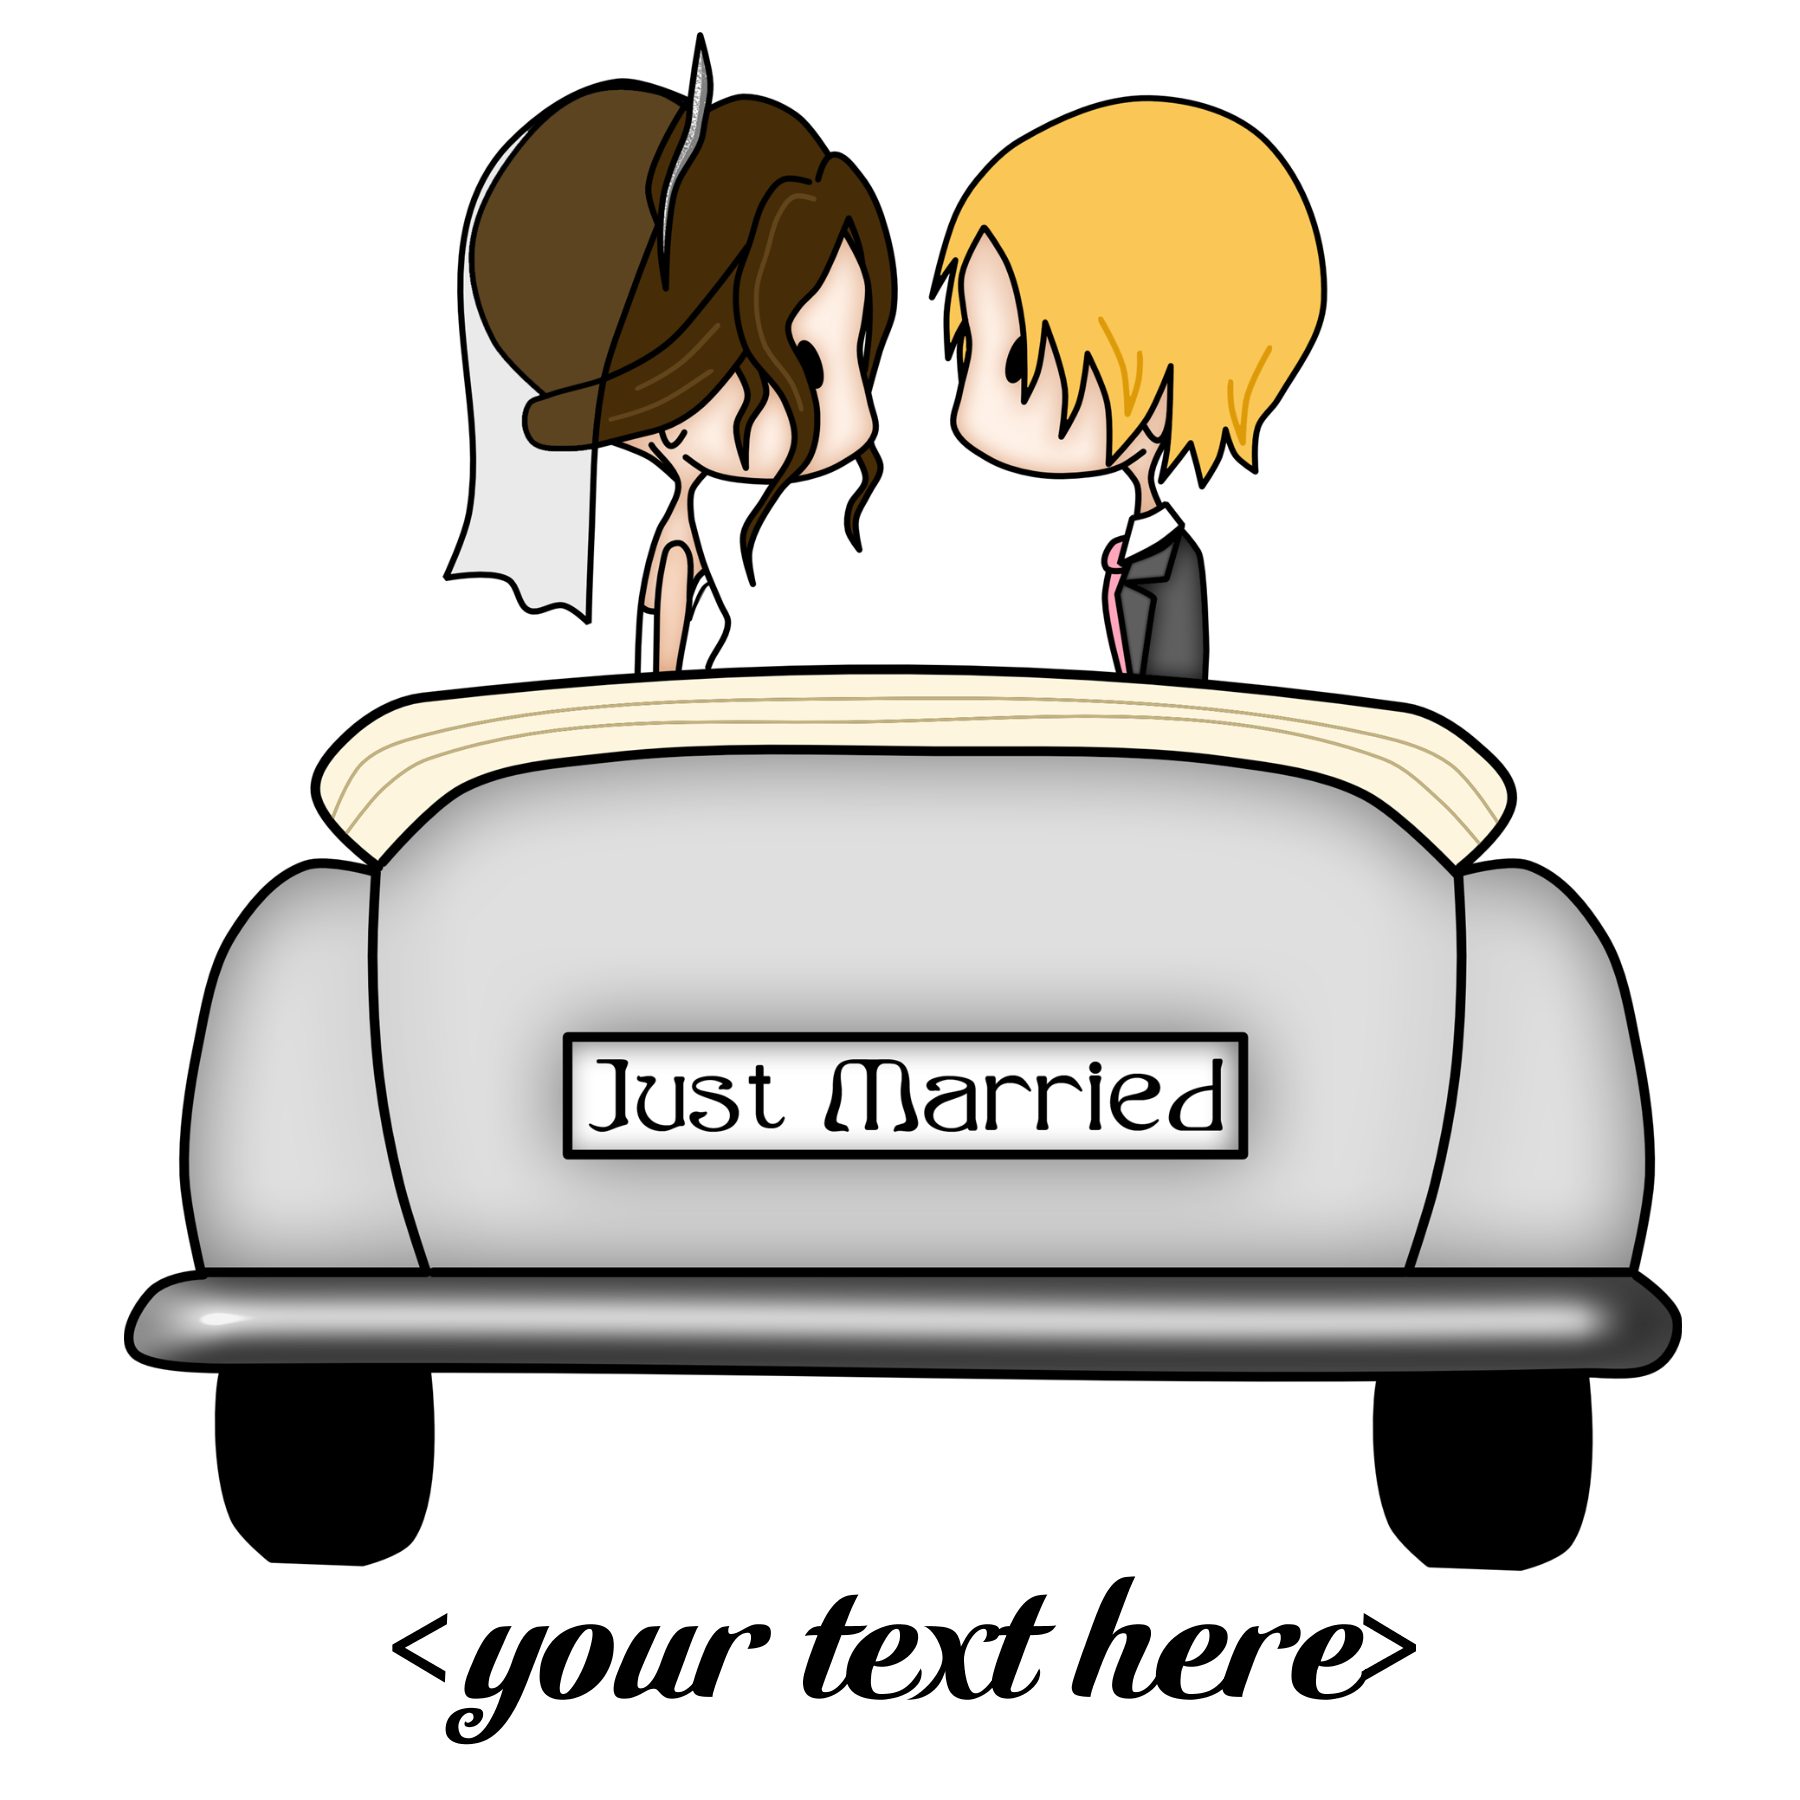 Download image pluspng com png just married